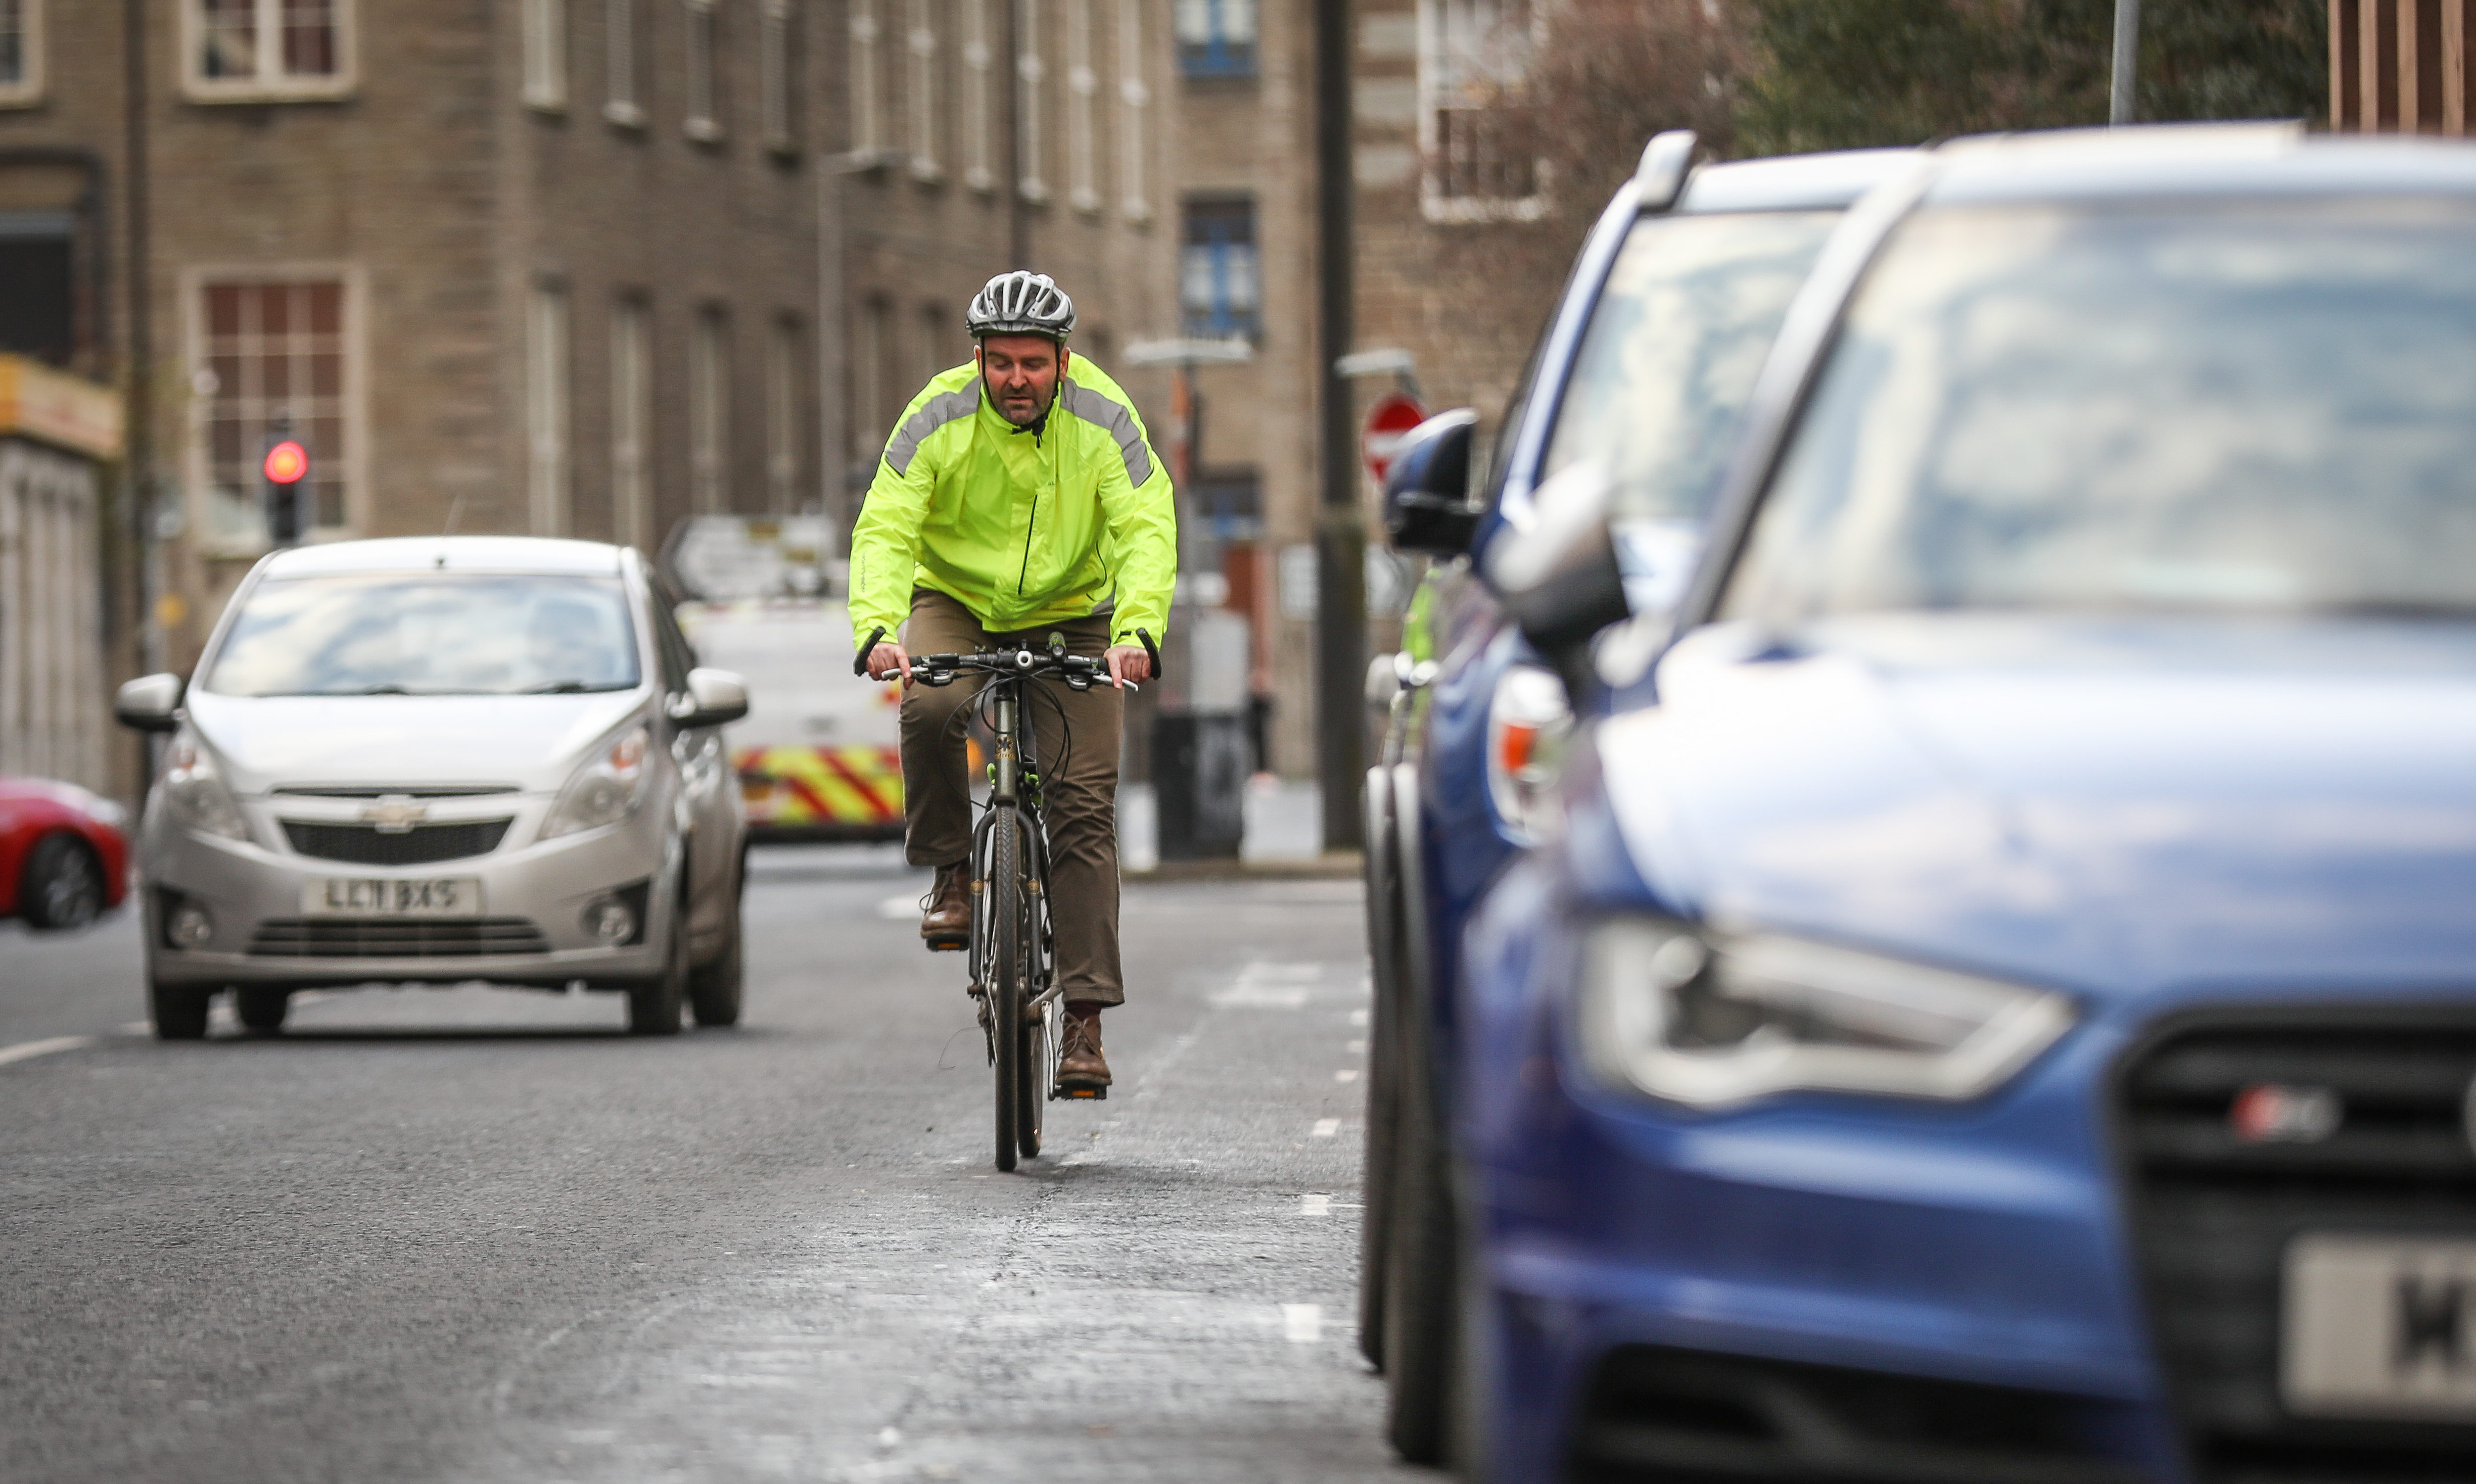 There are large gaps in the current cycle network in Dundee